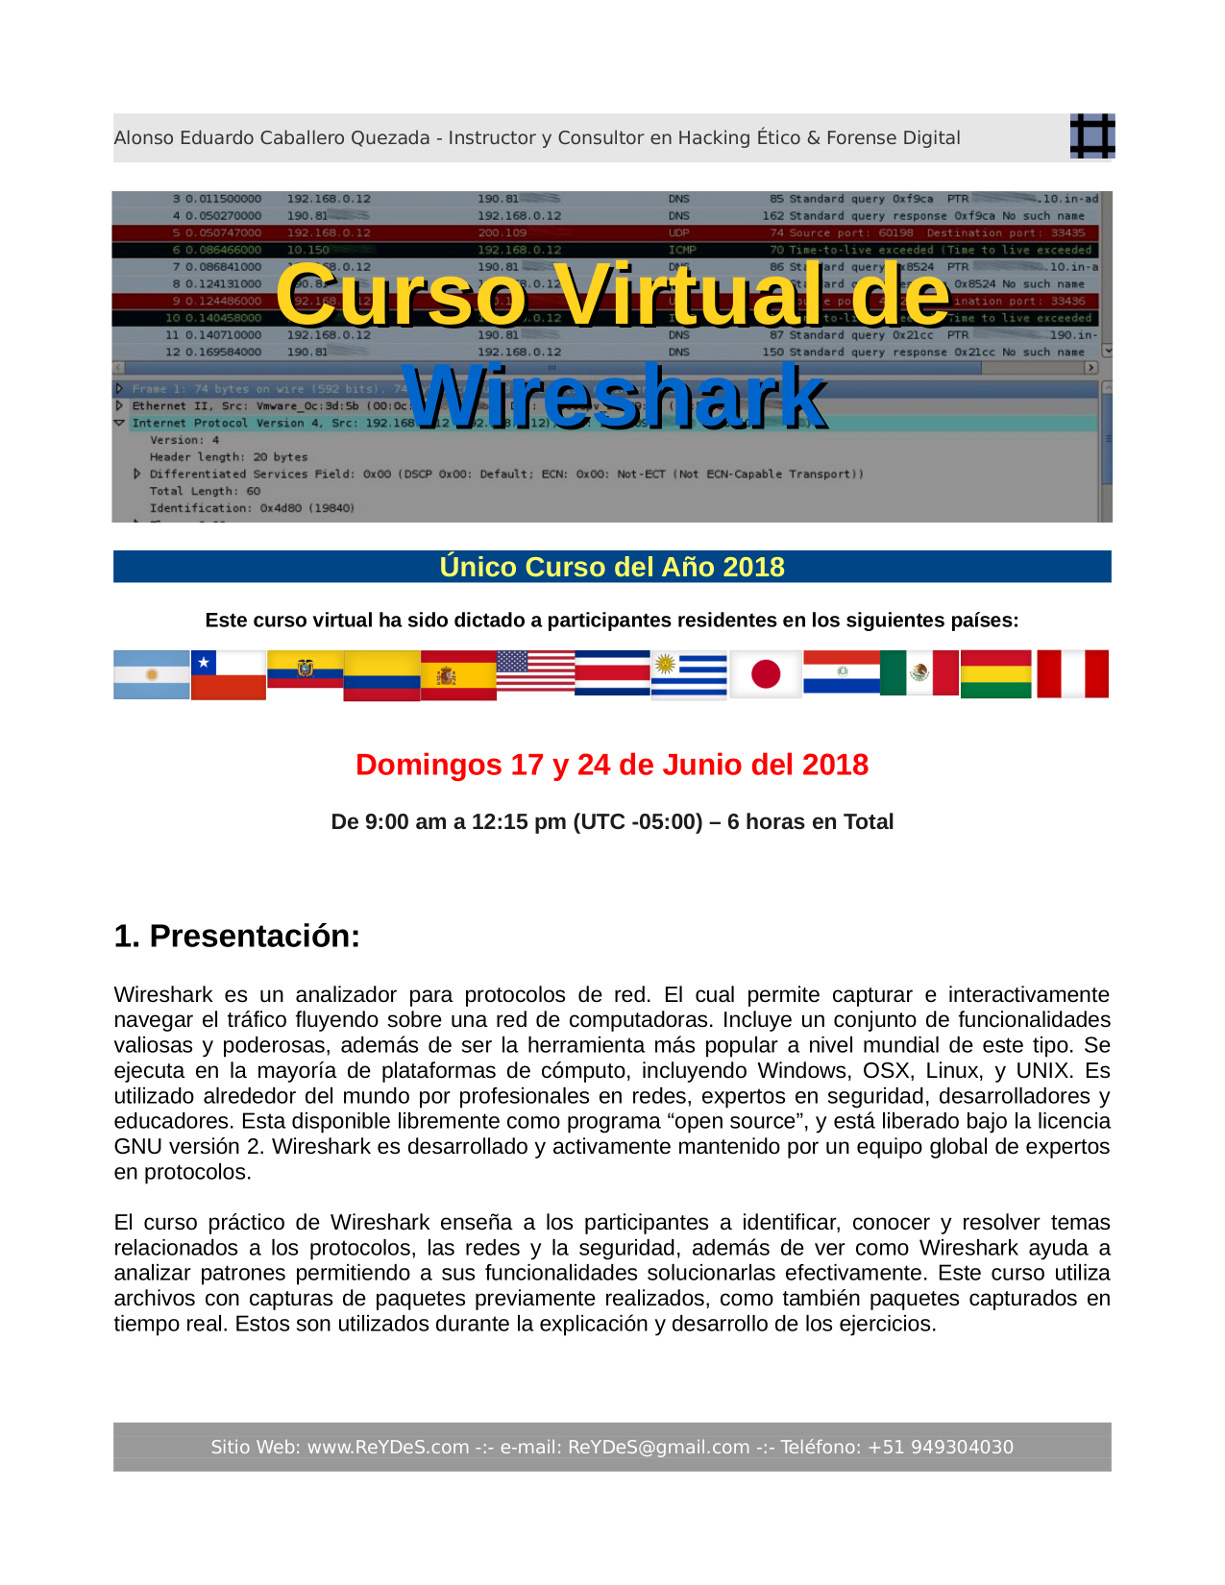 Único Curso Virtual Wireshark 2018